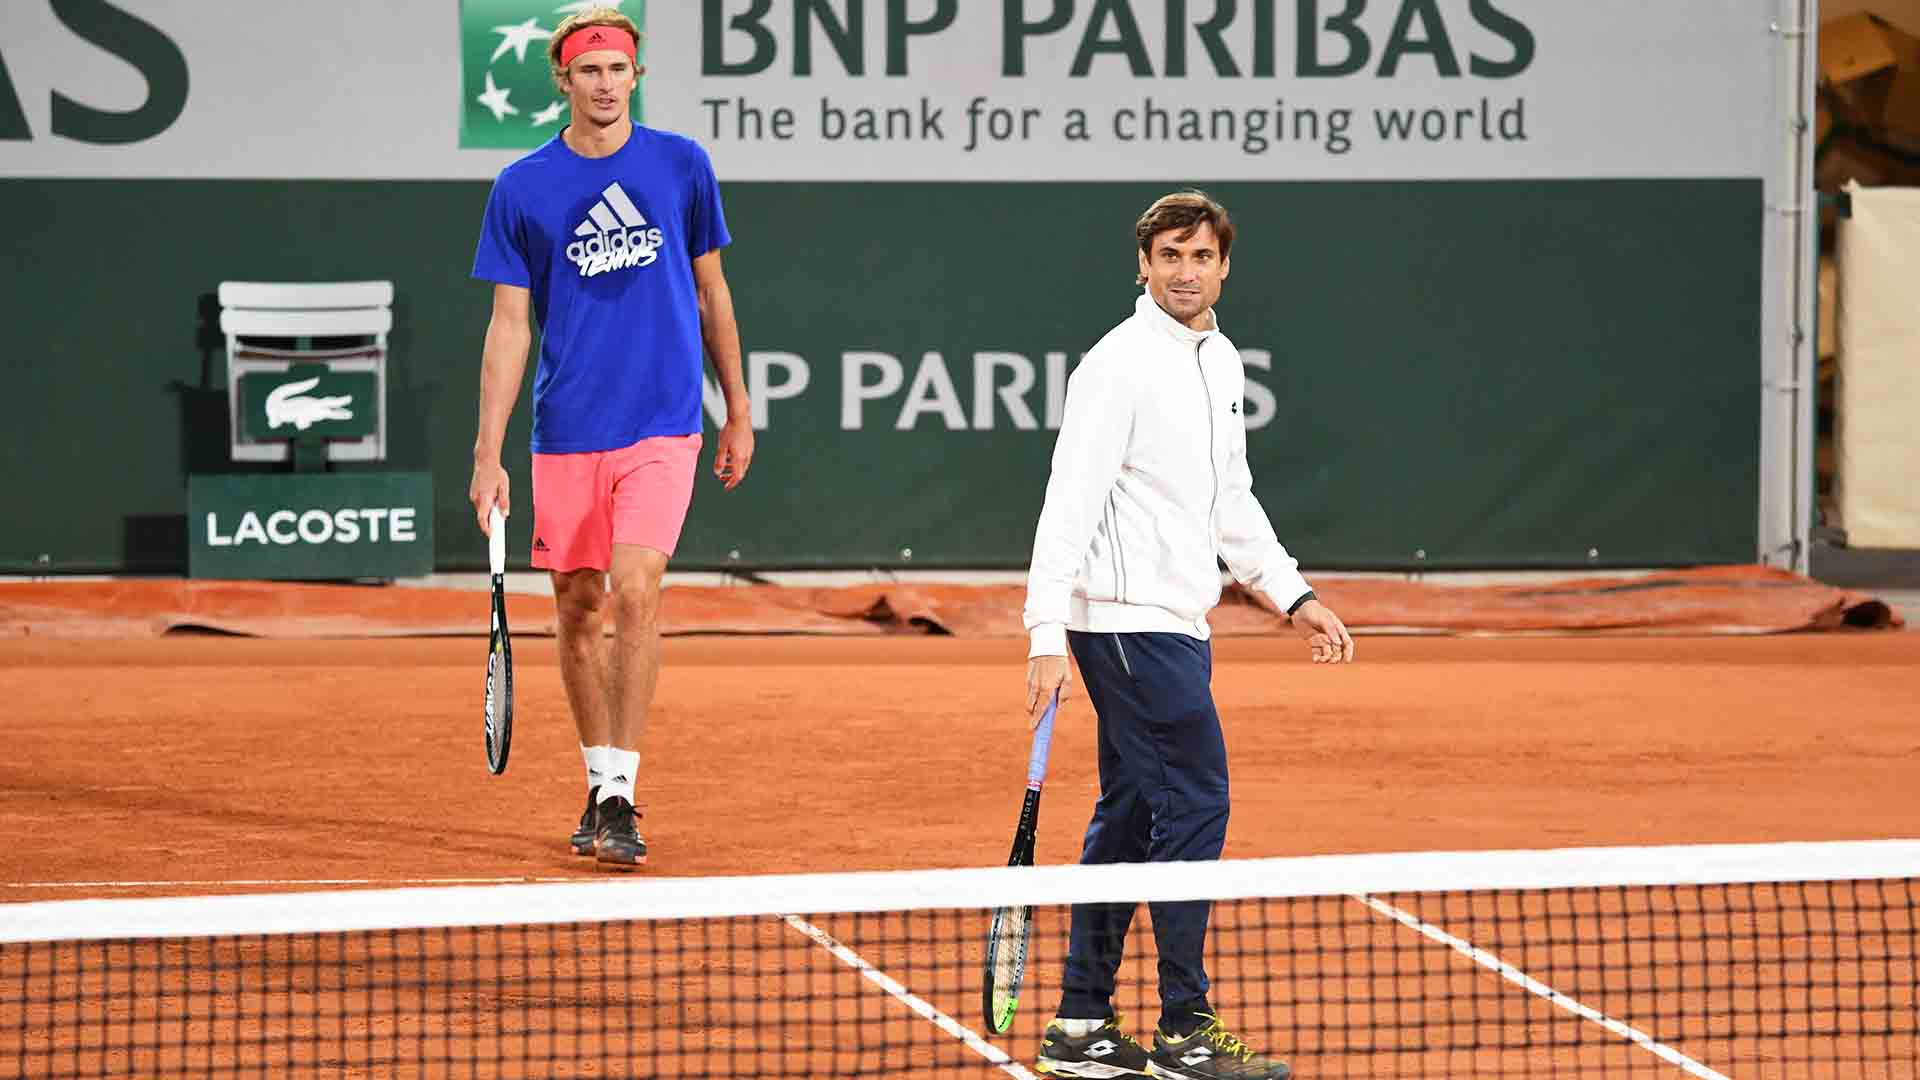 <a href='/en/players/alexander-zverev/z355/overview'>Alexander Zverev</a> practises with new coach <a href='/en/players/david-ferrer/f401/overview'>David Ferrer</a> ahead of his fifth consecutive main draw appearance at <a href='/en/tournaments/roland-garros/520/overview'>Roland Garros</a>.